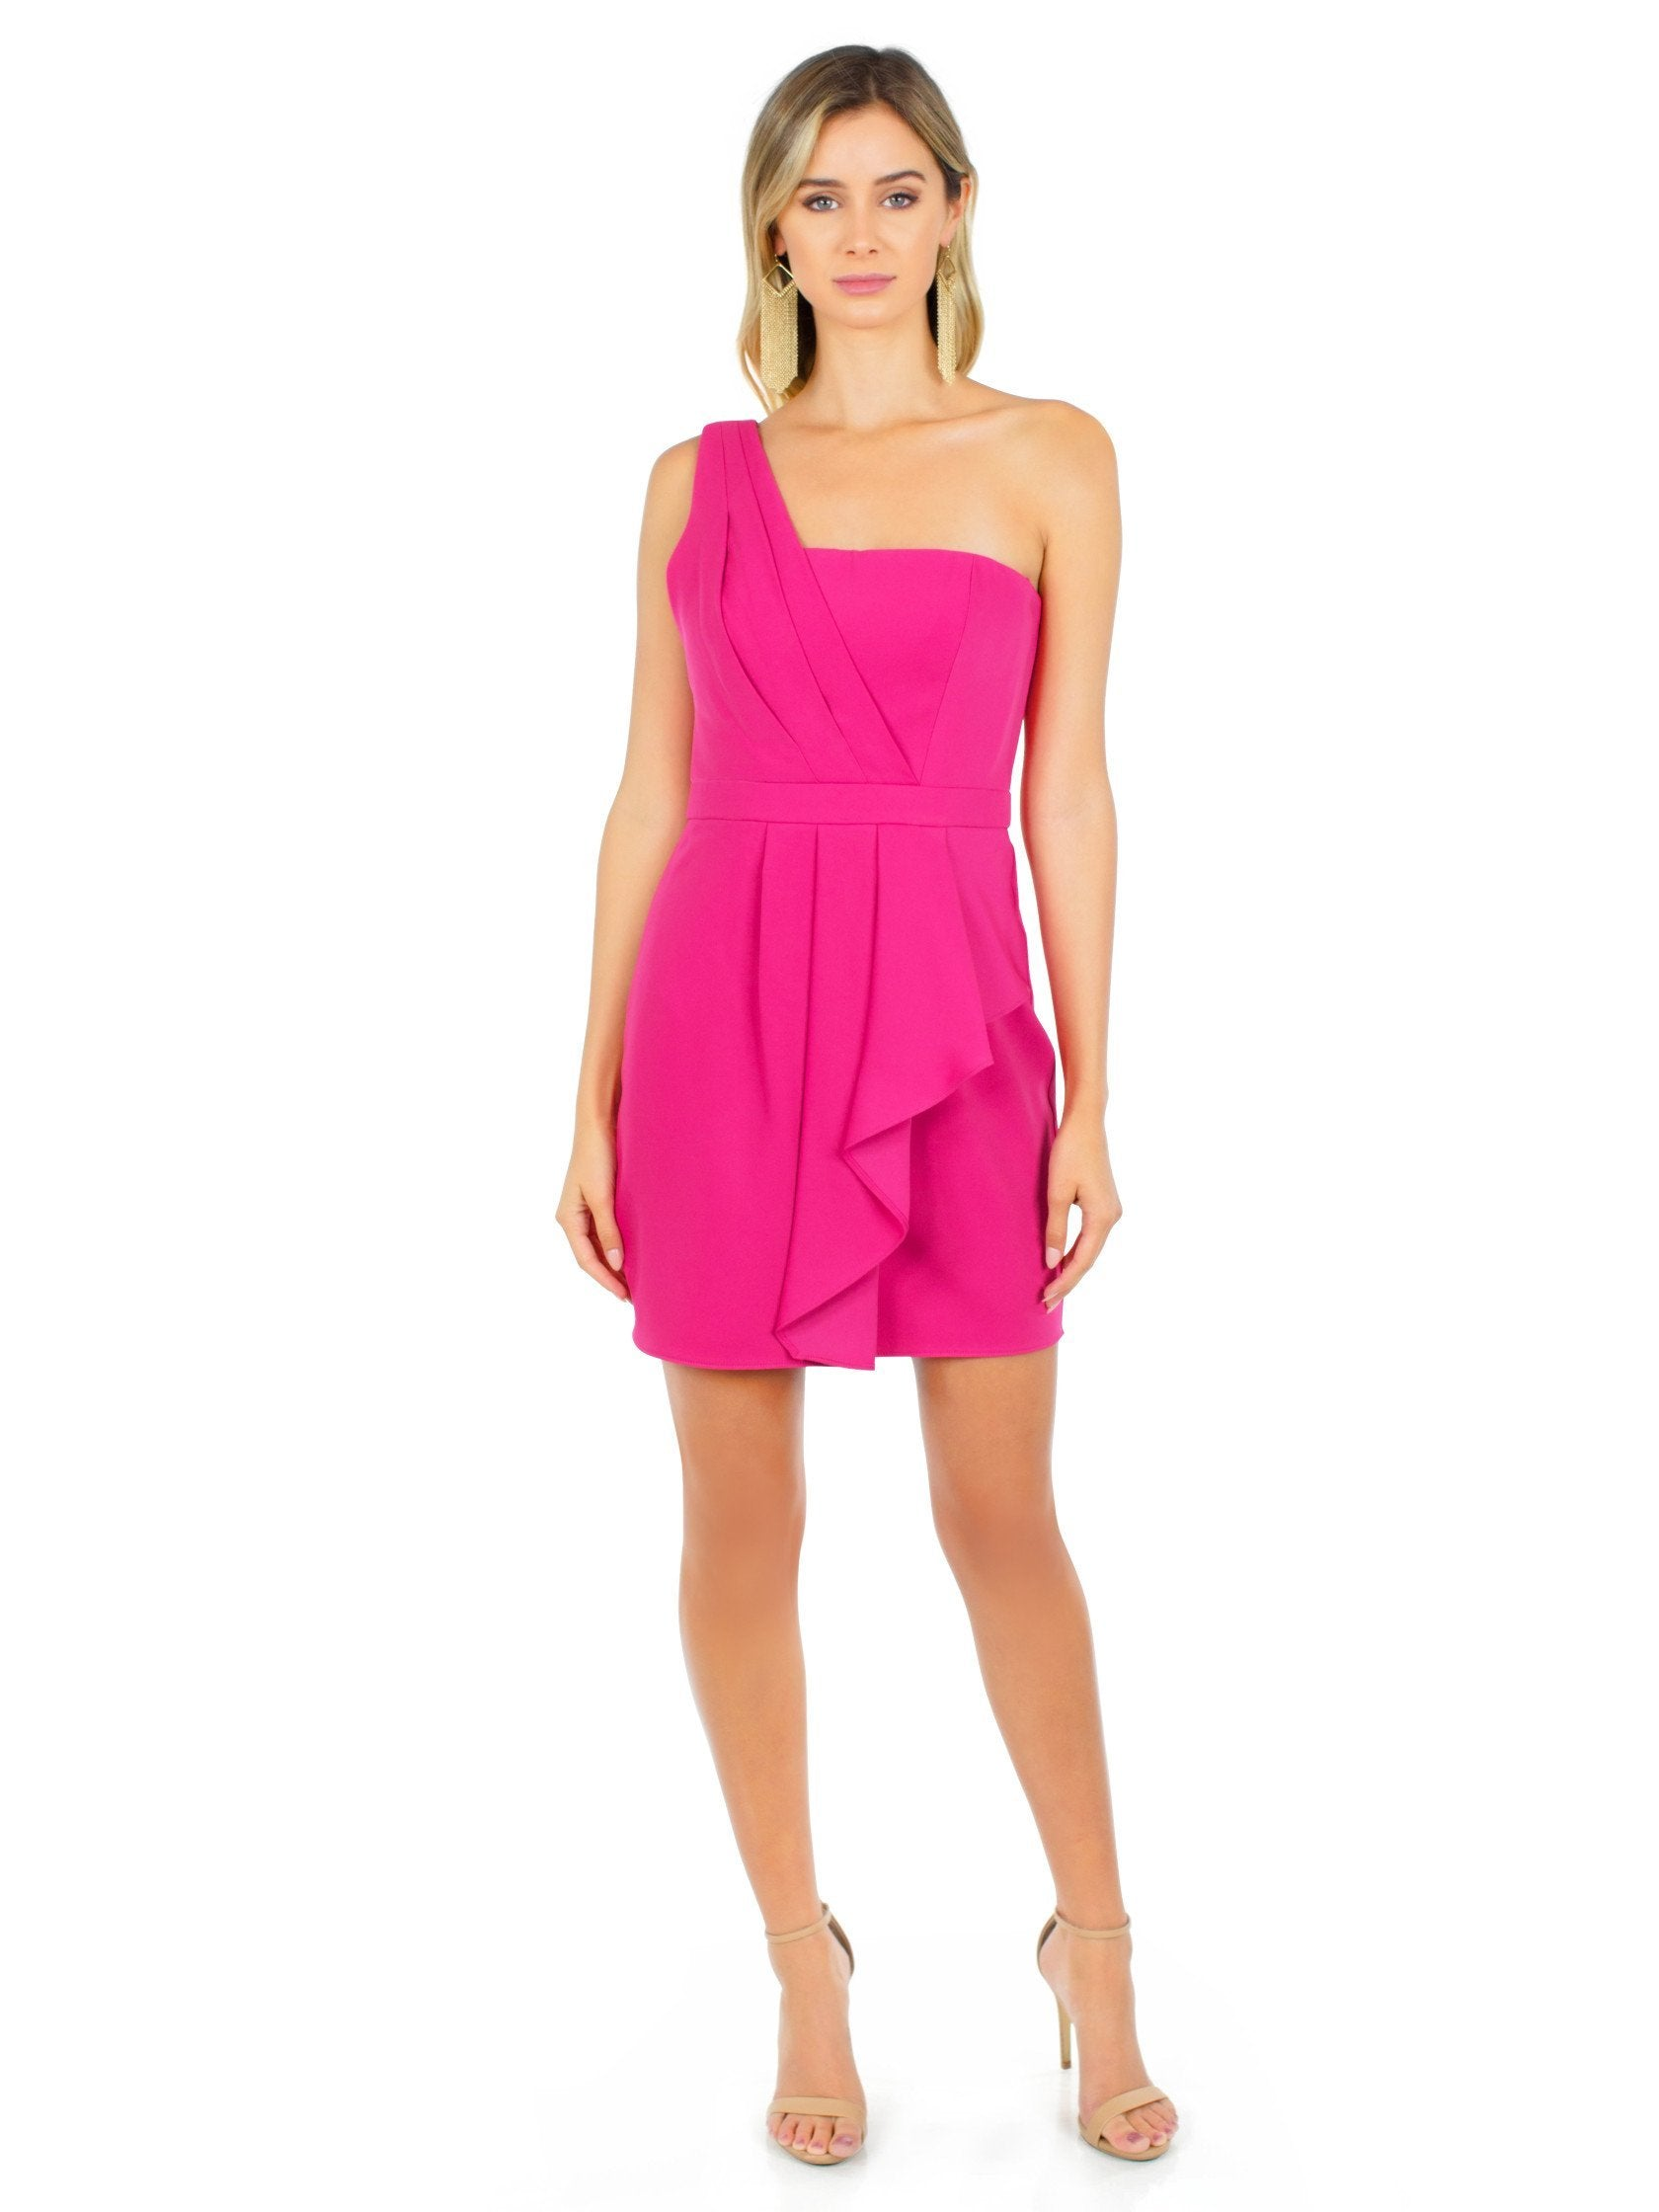 Girl outfit in a dress rental from BCBGMAXAZRIA called Vanessa One-shoulder Cascade Ruffle Dress